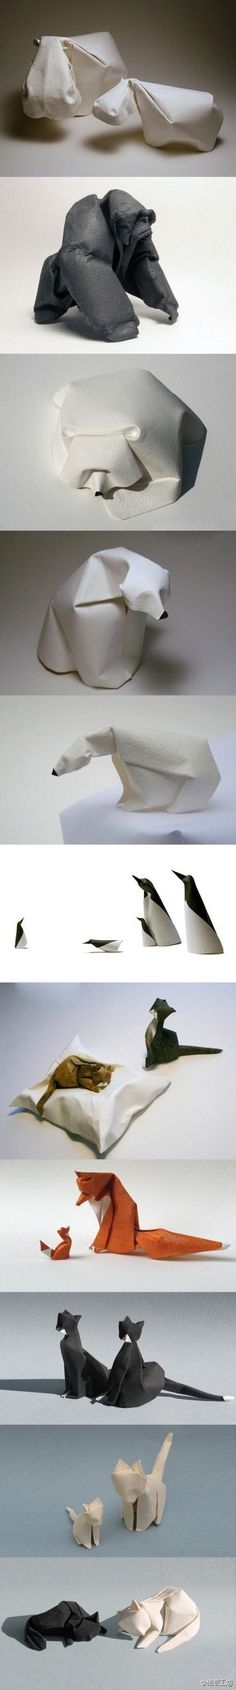 Origami Zoo by Dinh Truong Giang